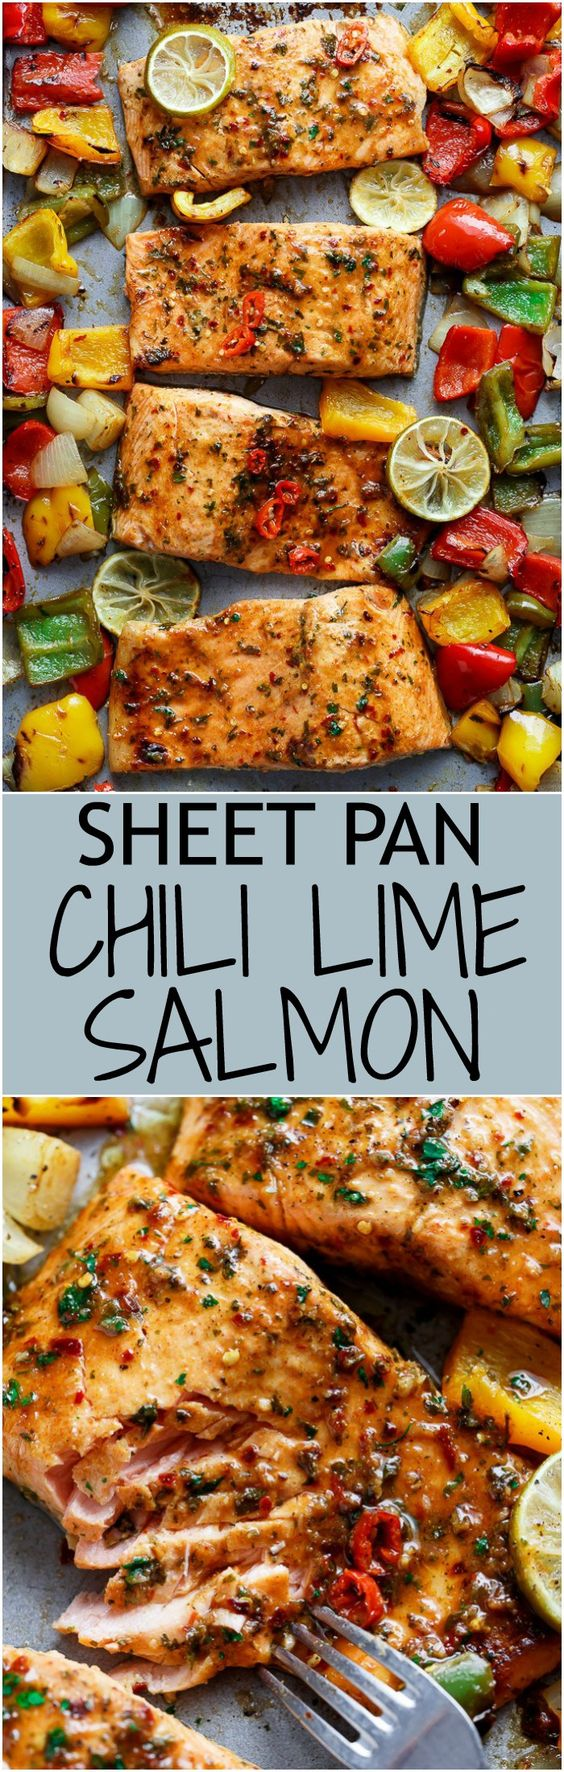 Sheet Pan Chili Lime Salmon with Fajita Flavours Recipe via Cafe Delites - and a charred, crispy roasted trio of peppers for an easy and healthy weeknight meal! #sheetpansuppers #sheetpanrecipes #sheetpandinners #onepanmeals #healthyrecipes #mealprep #easyrecipes #healthydinners #healthysuppers #healthylunches #simplefamilymeals #simplefamilyrecipes #simplerecipes